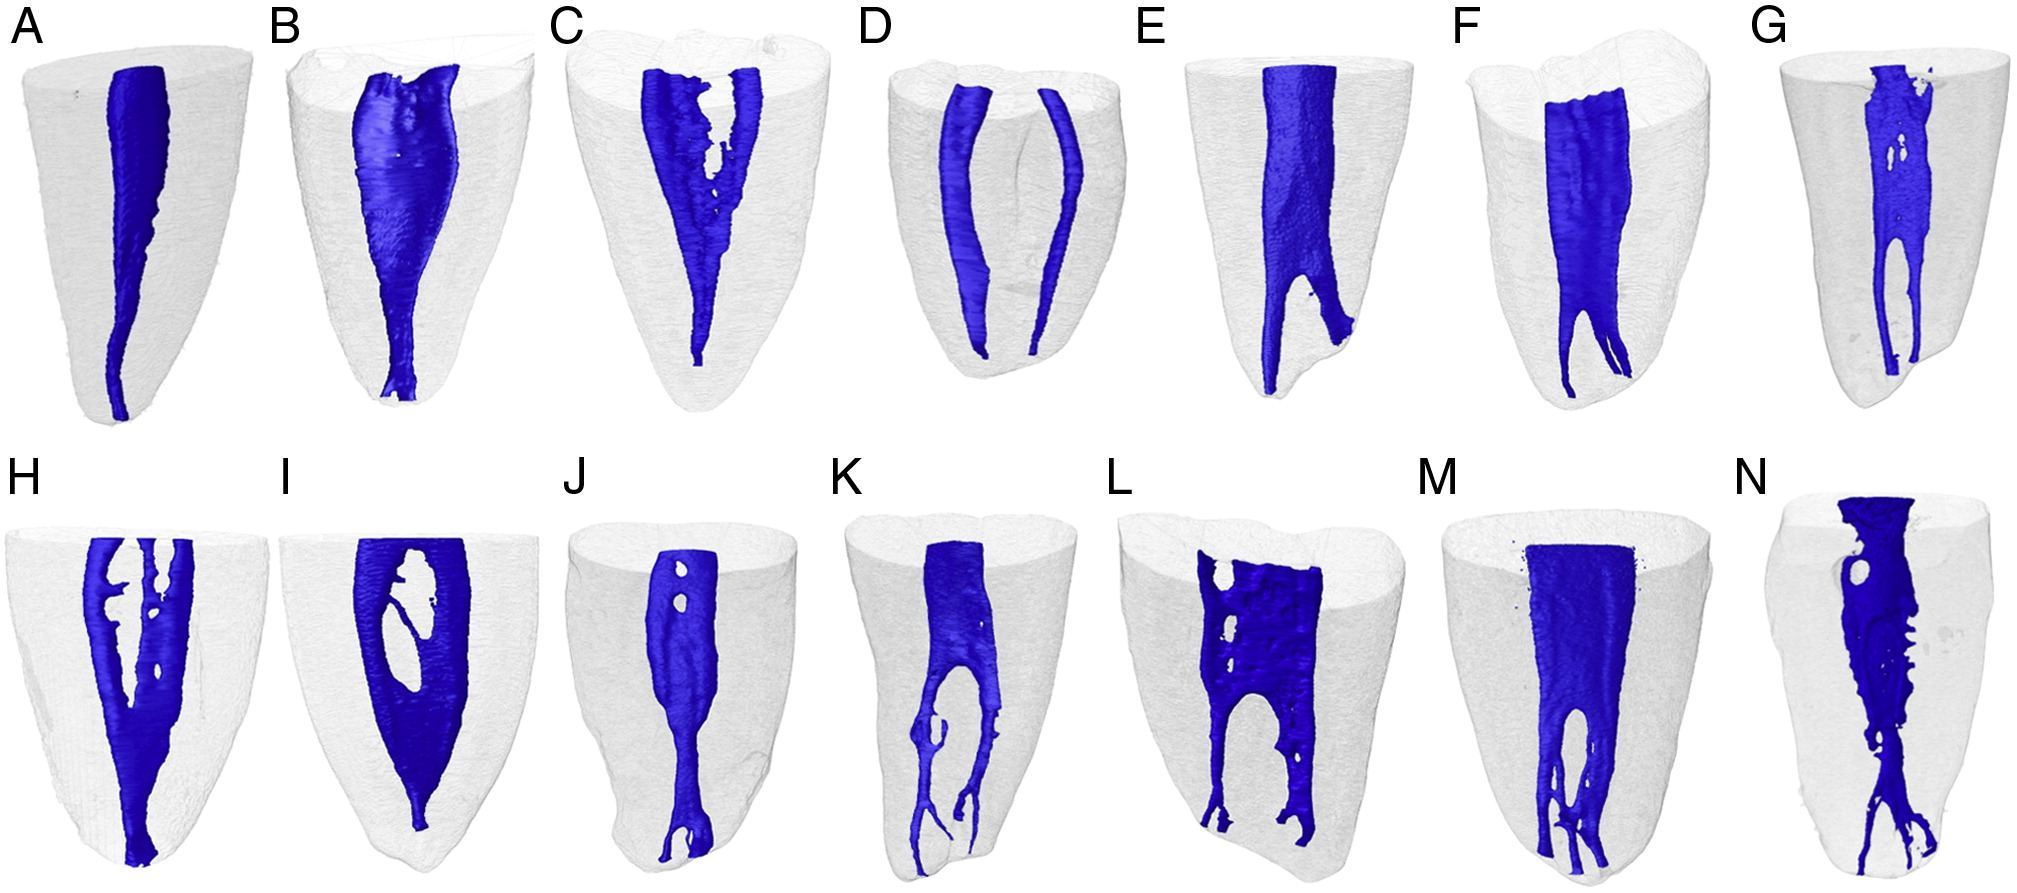 Root canal anatomy mandibular second molar & first - Bauer Smiles